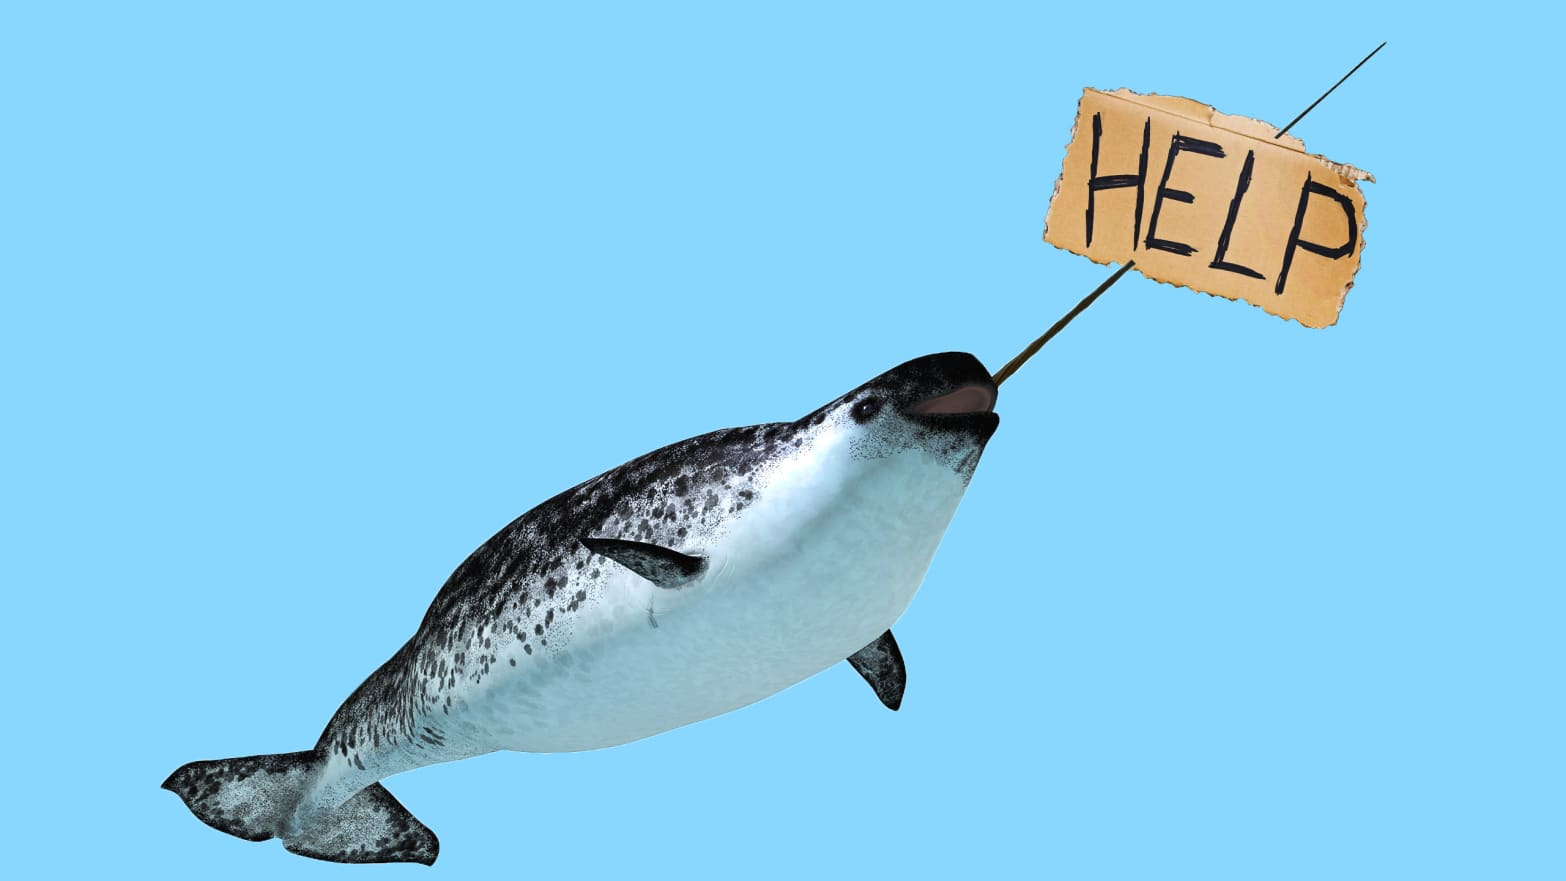 narwhal holding help sign on blue background extinct endangered species global shipping climate change unicorn whale